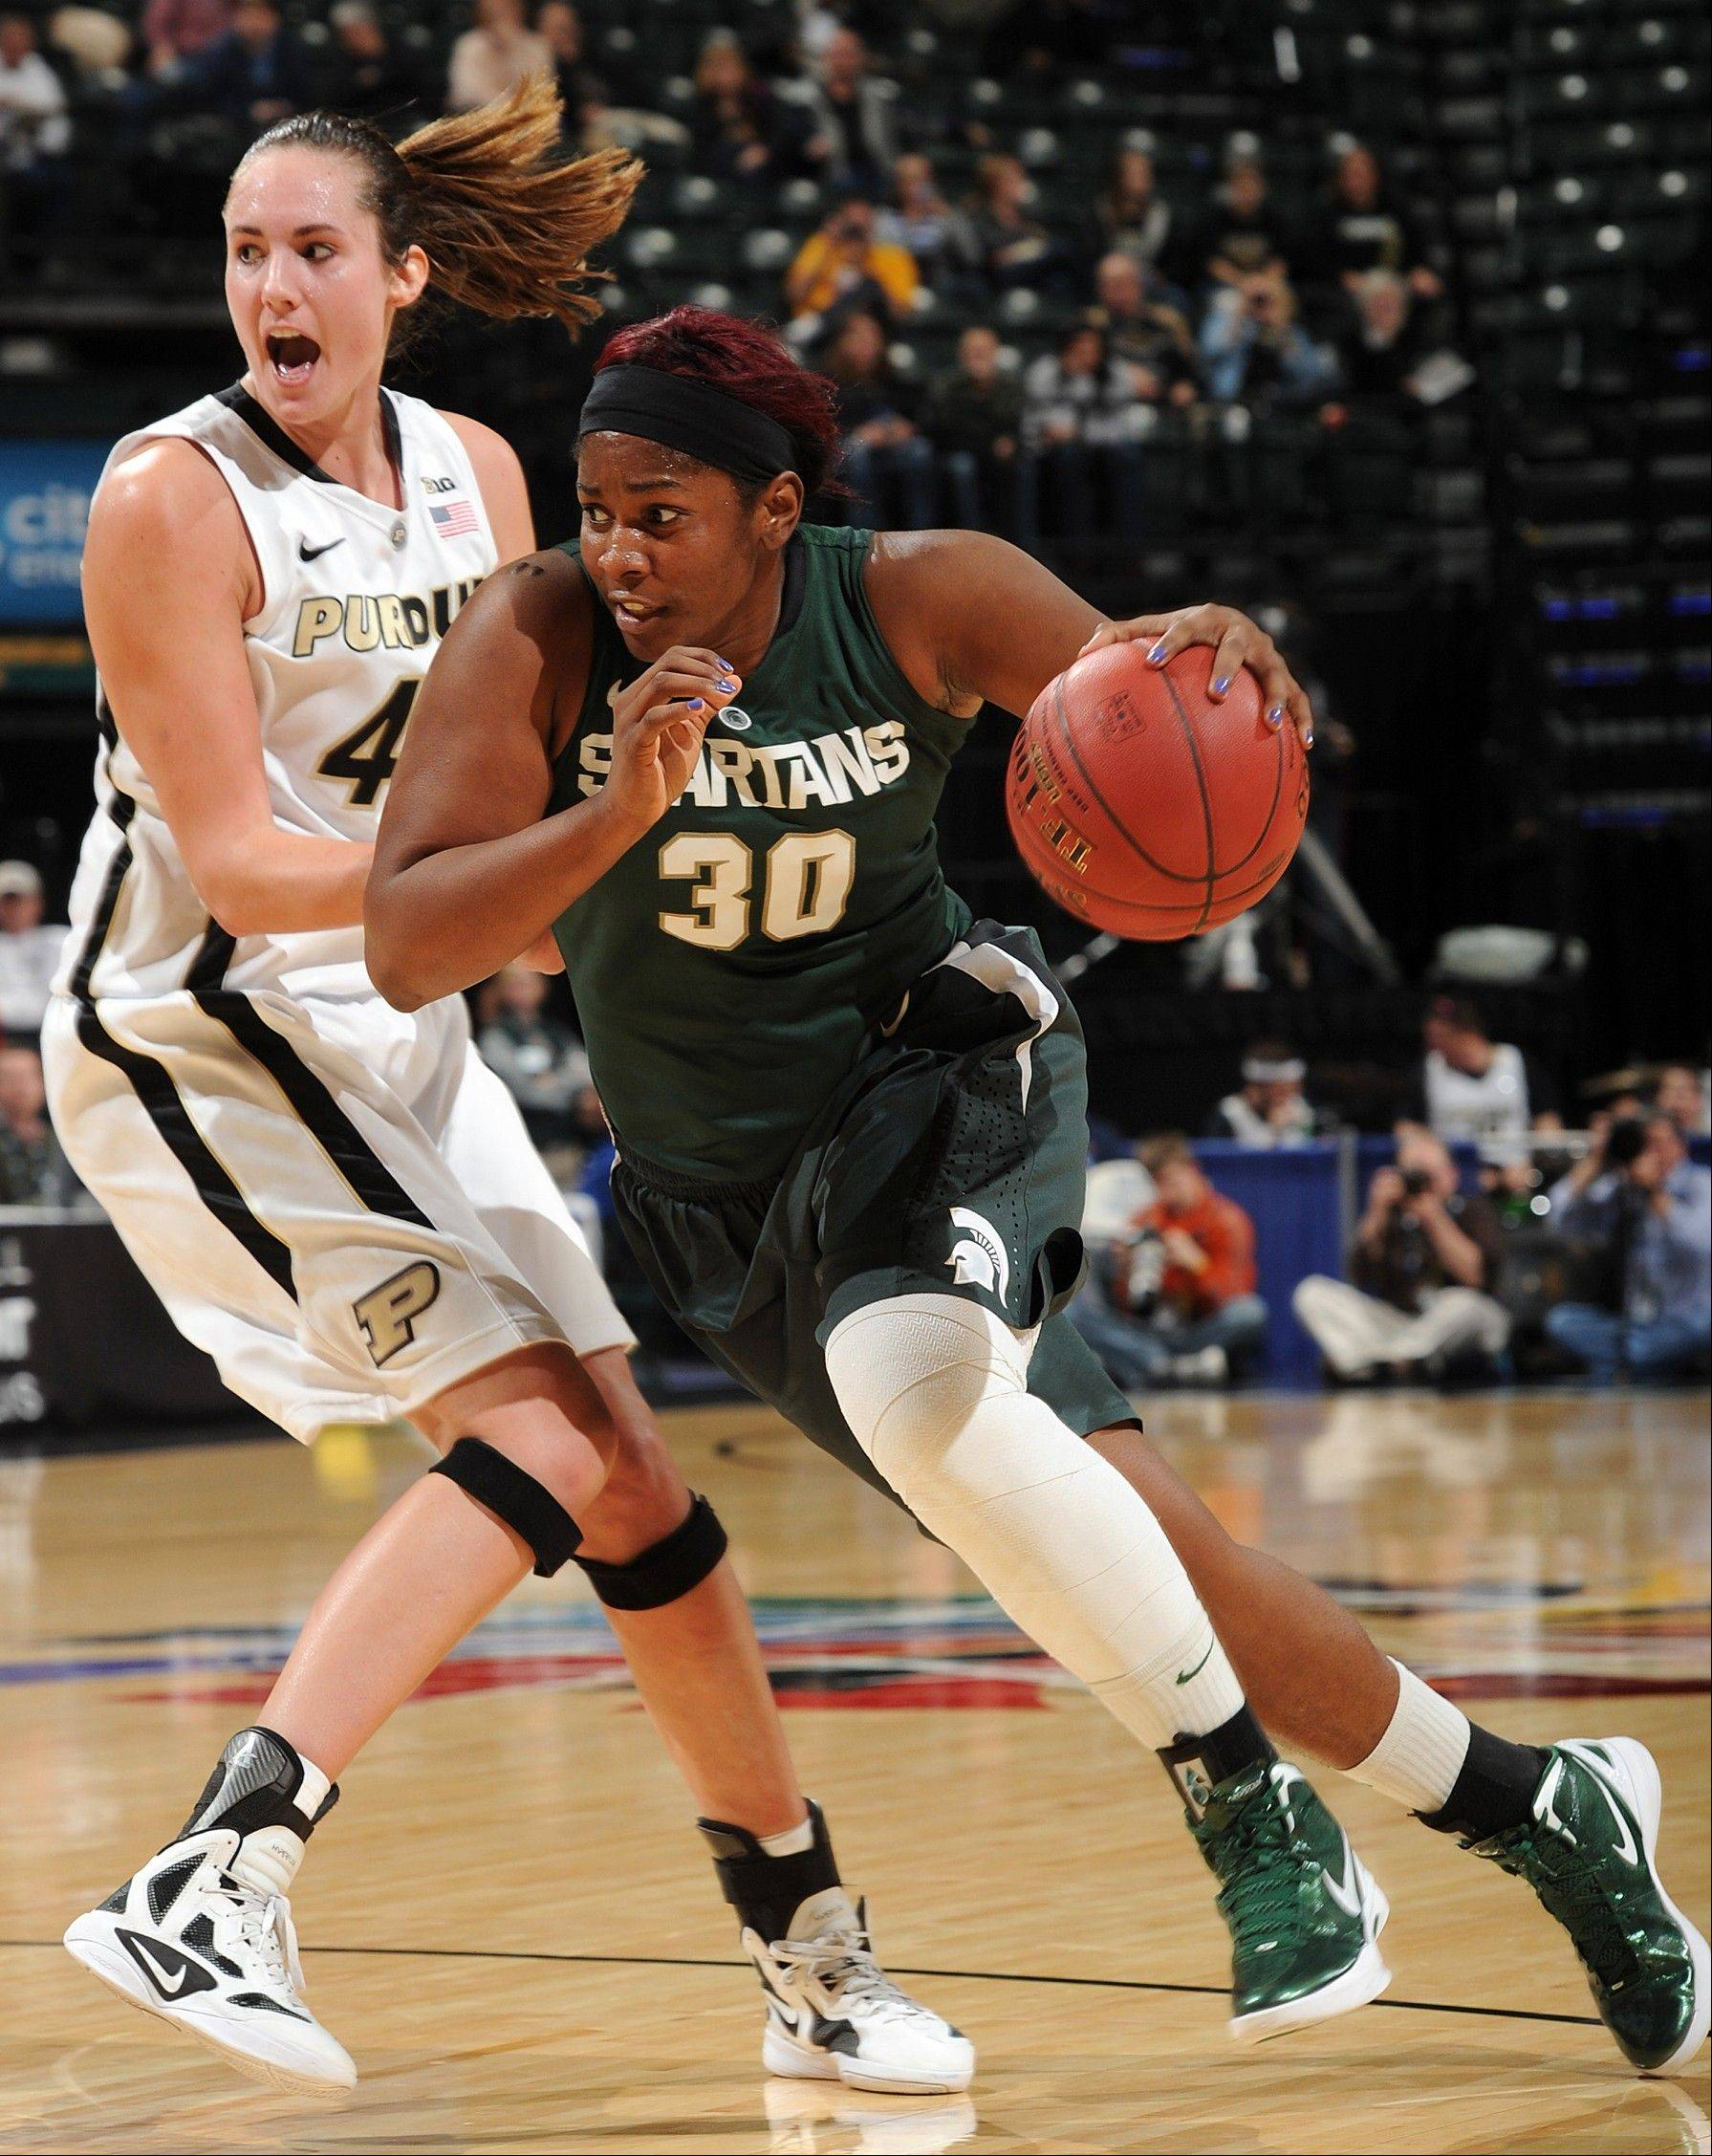 Michigan State's Lykendra Johnson drives against Purdue's Chelsea Jones in the 2012 Big 10 tournament. Johnson, an undrafted free agent, will have a tryout with the Chicago Sky.